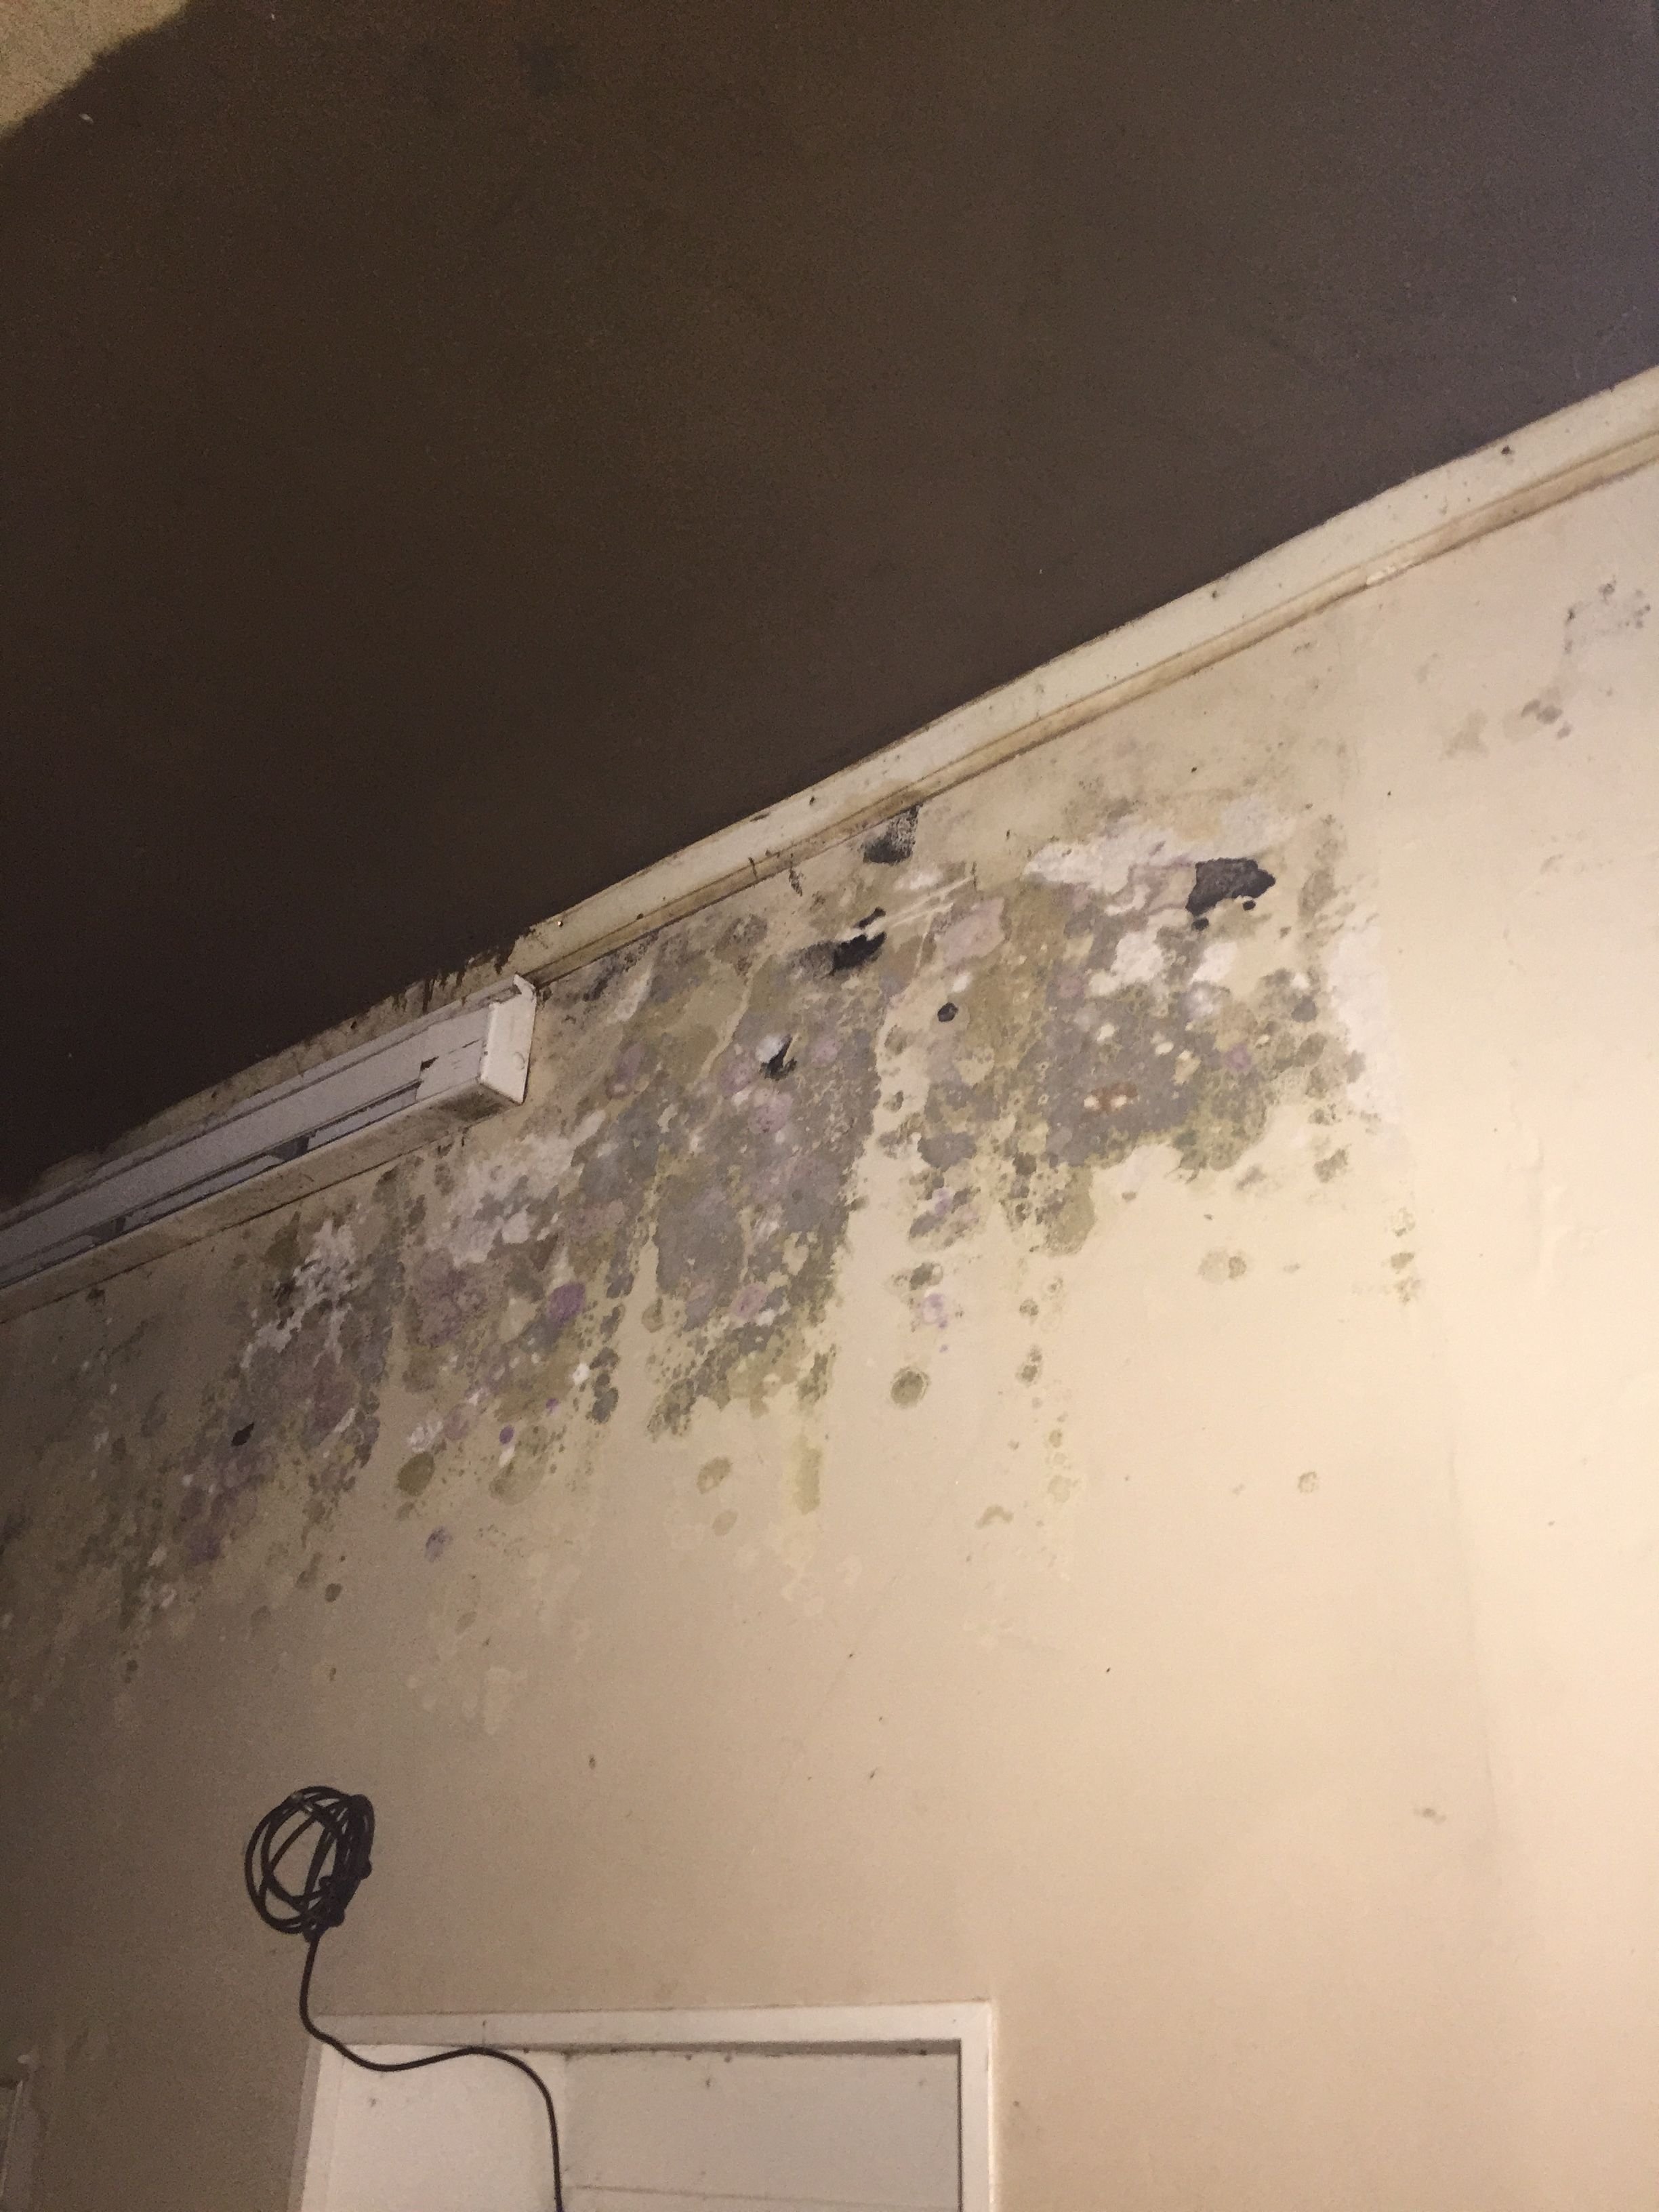 Professional Mold Testing Contractors (With images